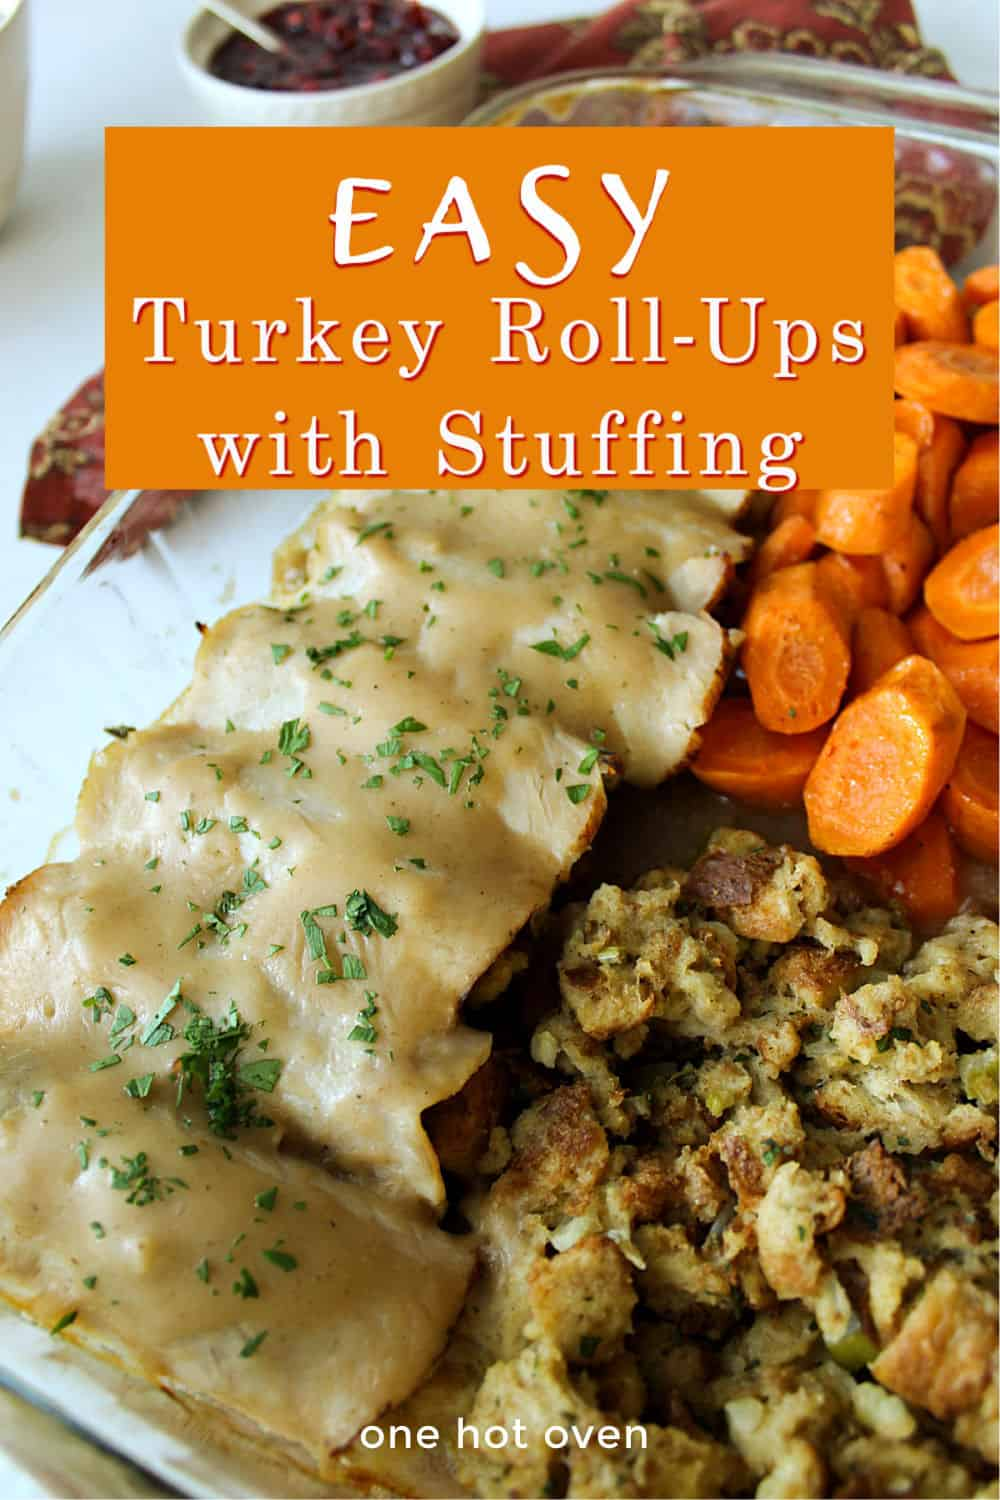 Turkey roll-ups with stuffing and cranberry sauce